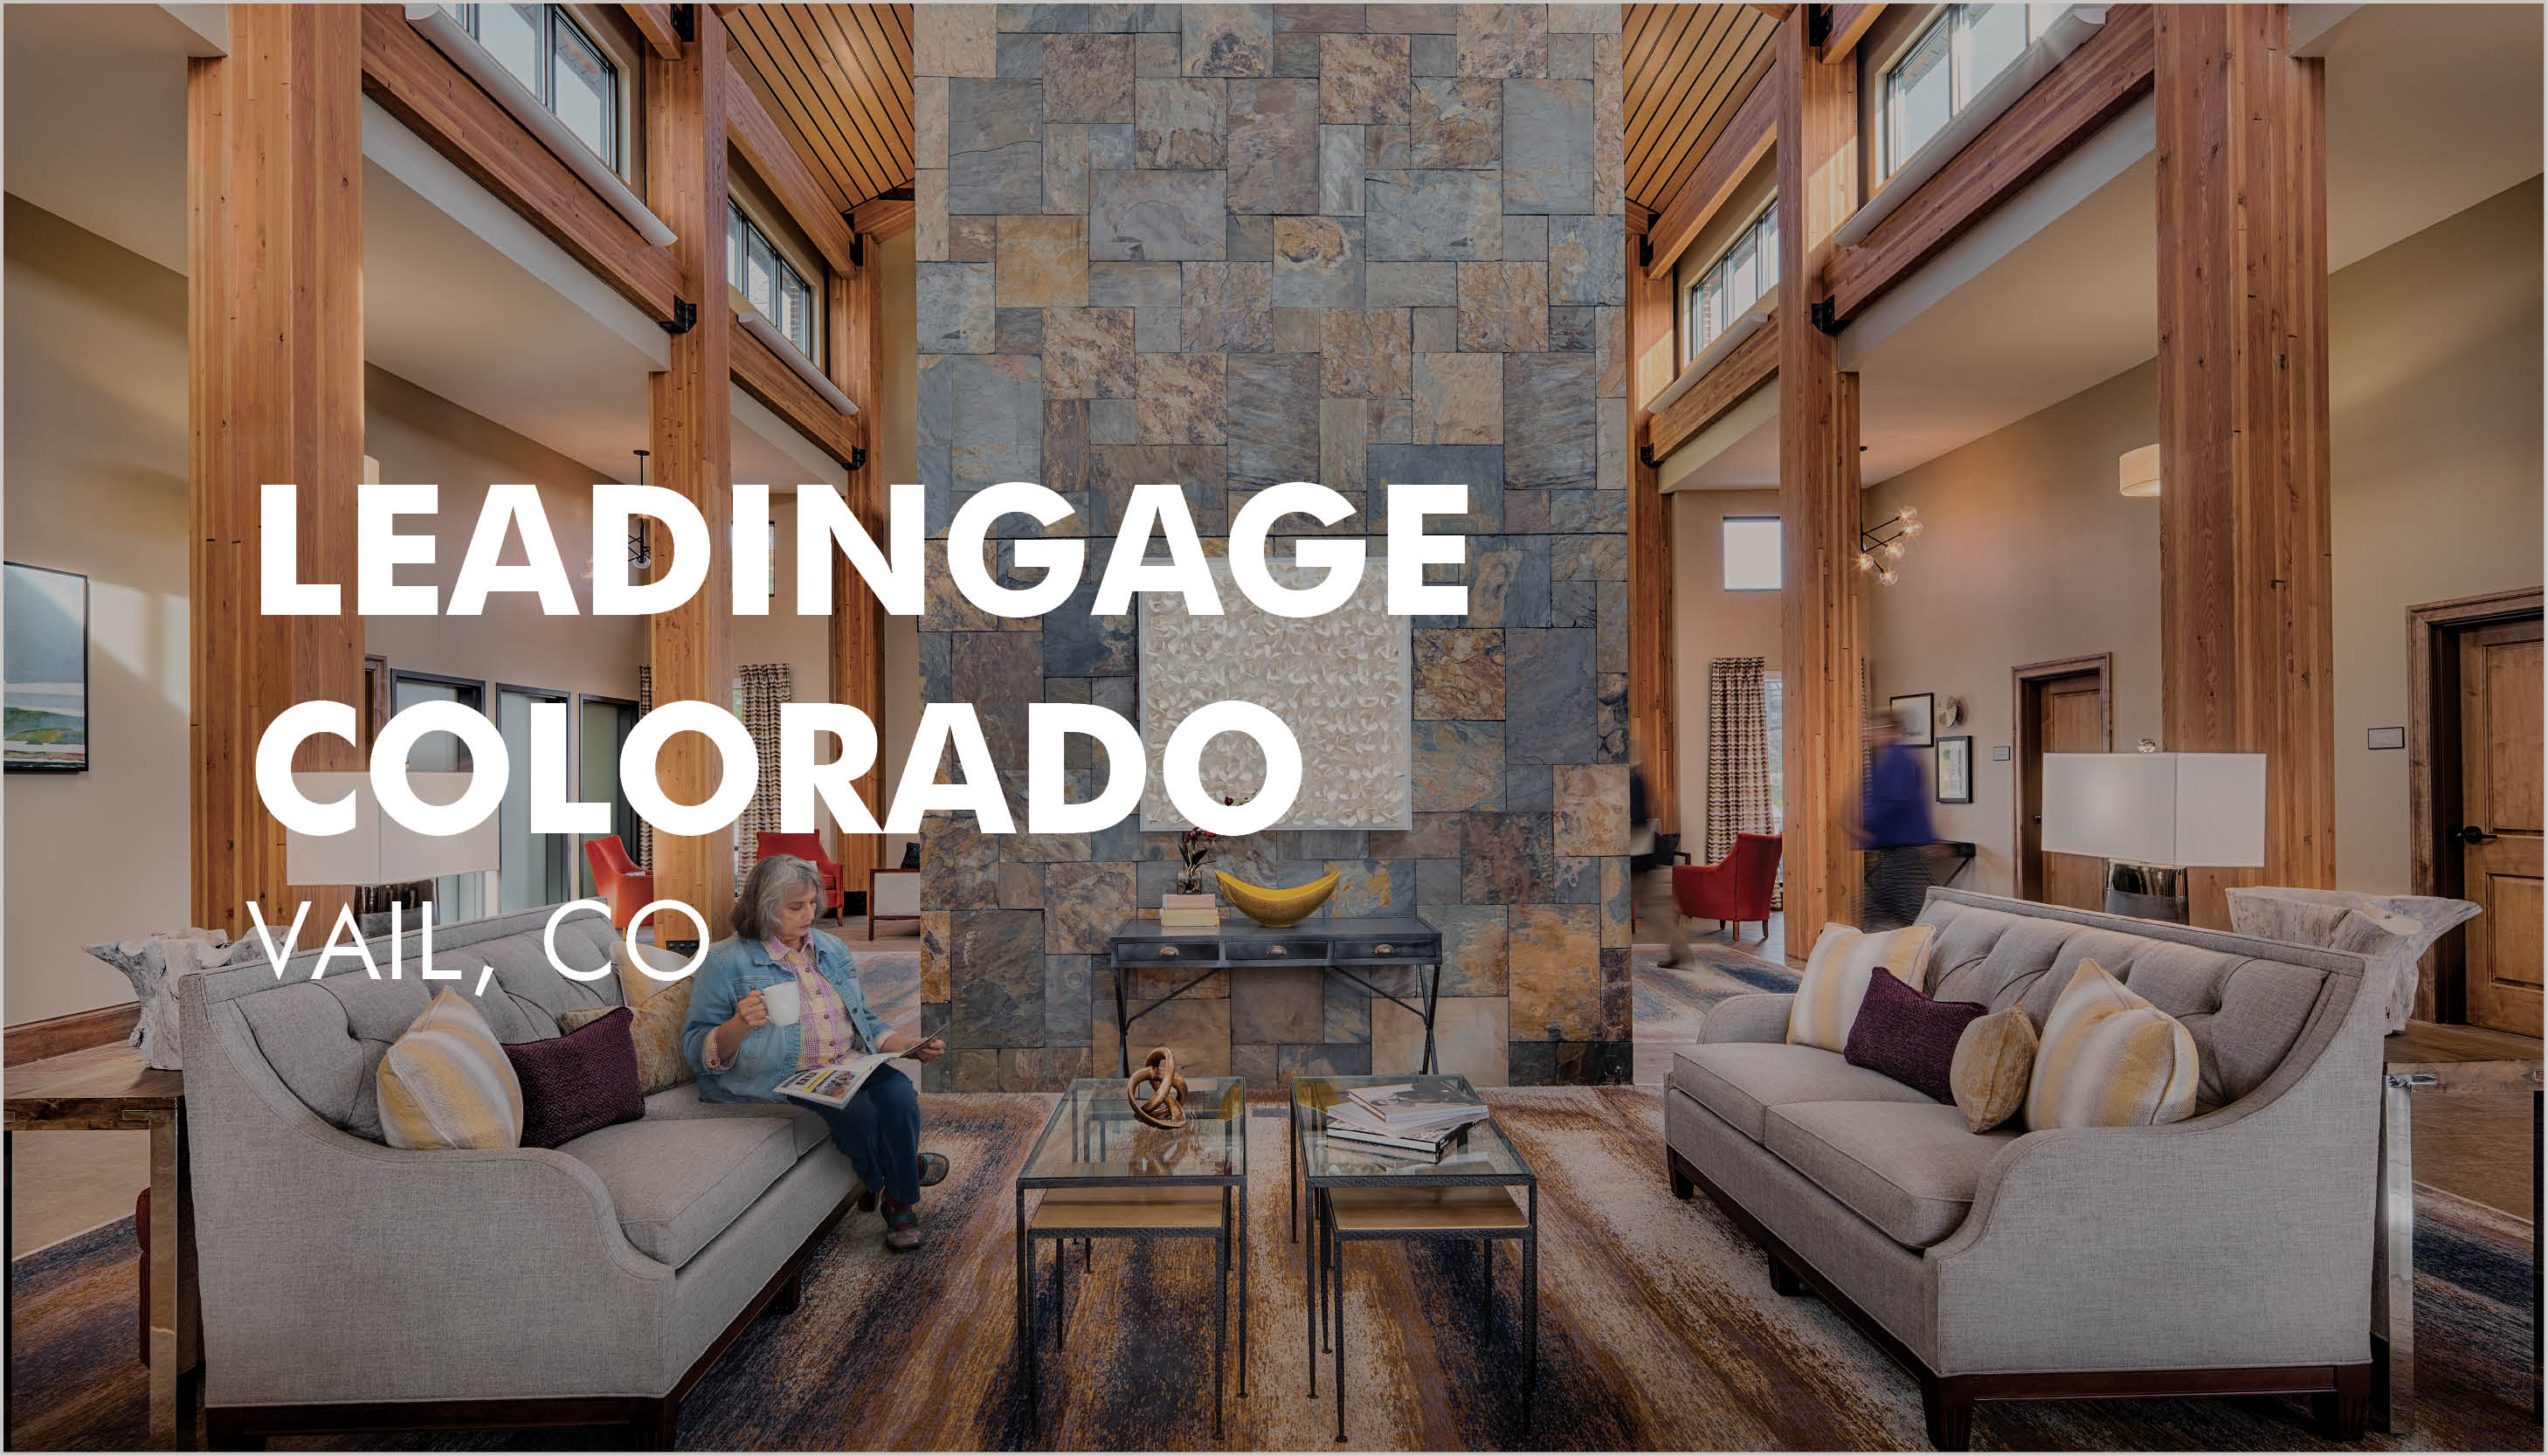 LeadingAge Colorado Annual Conference 2019 Image